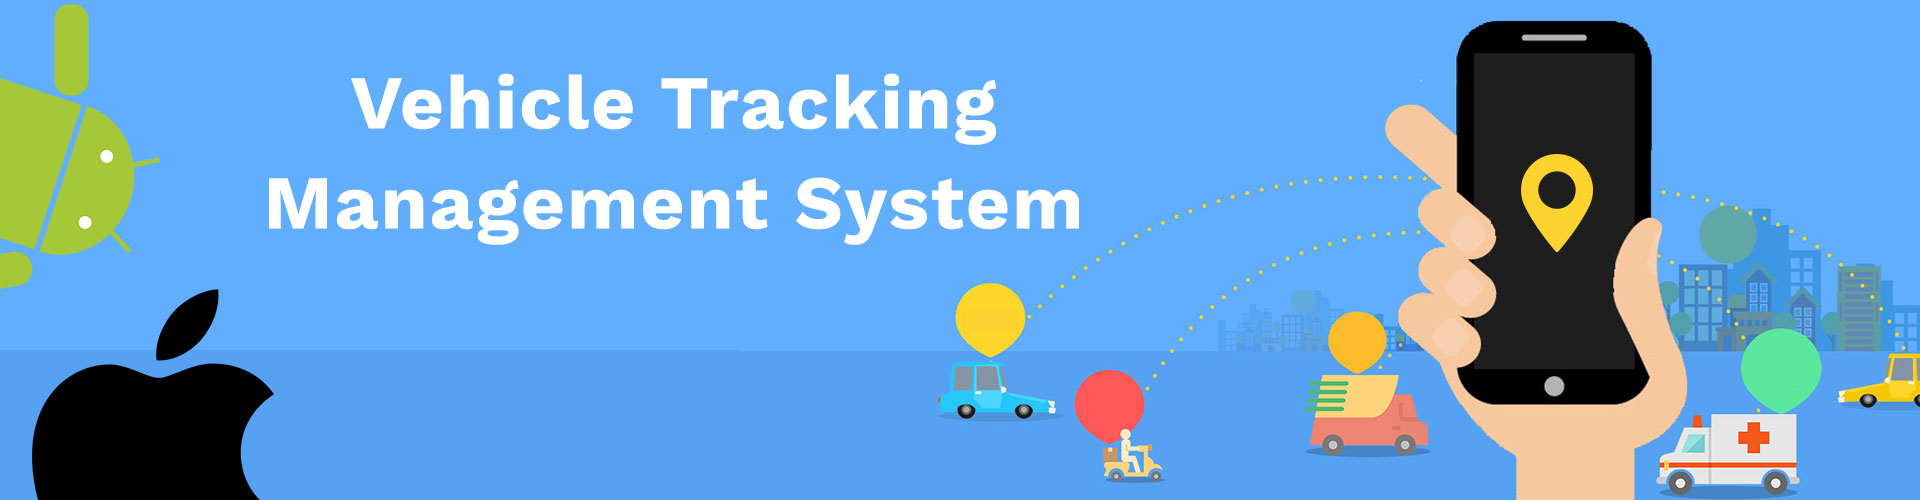 vehicle tracking management system